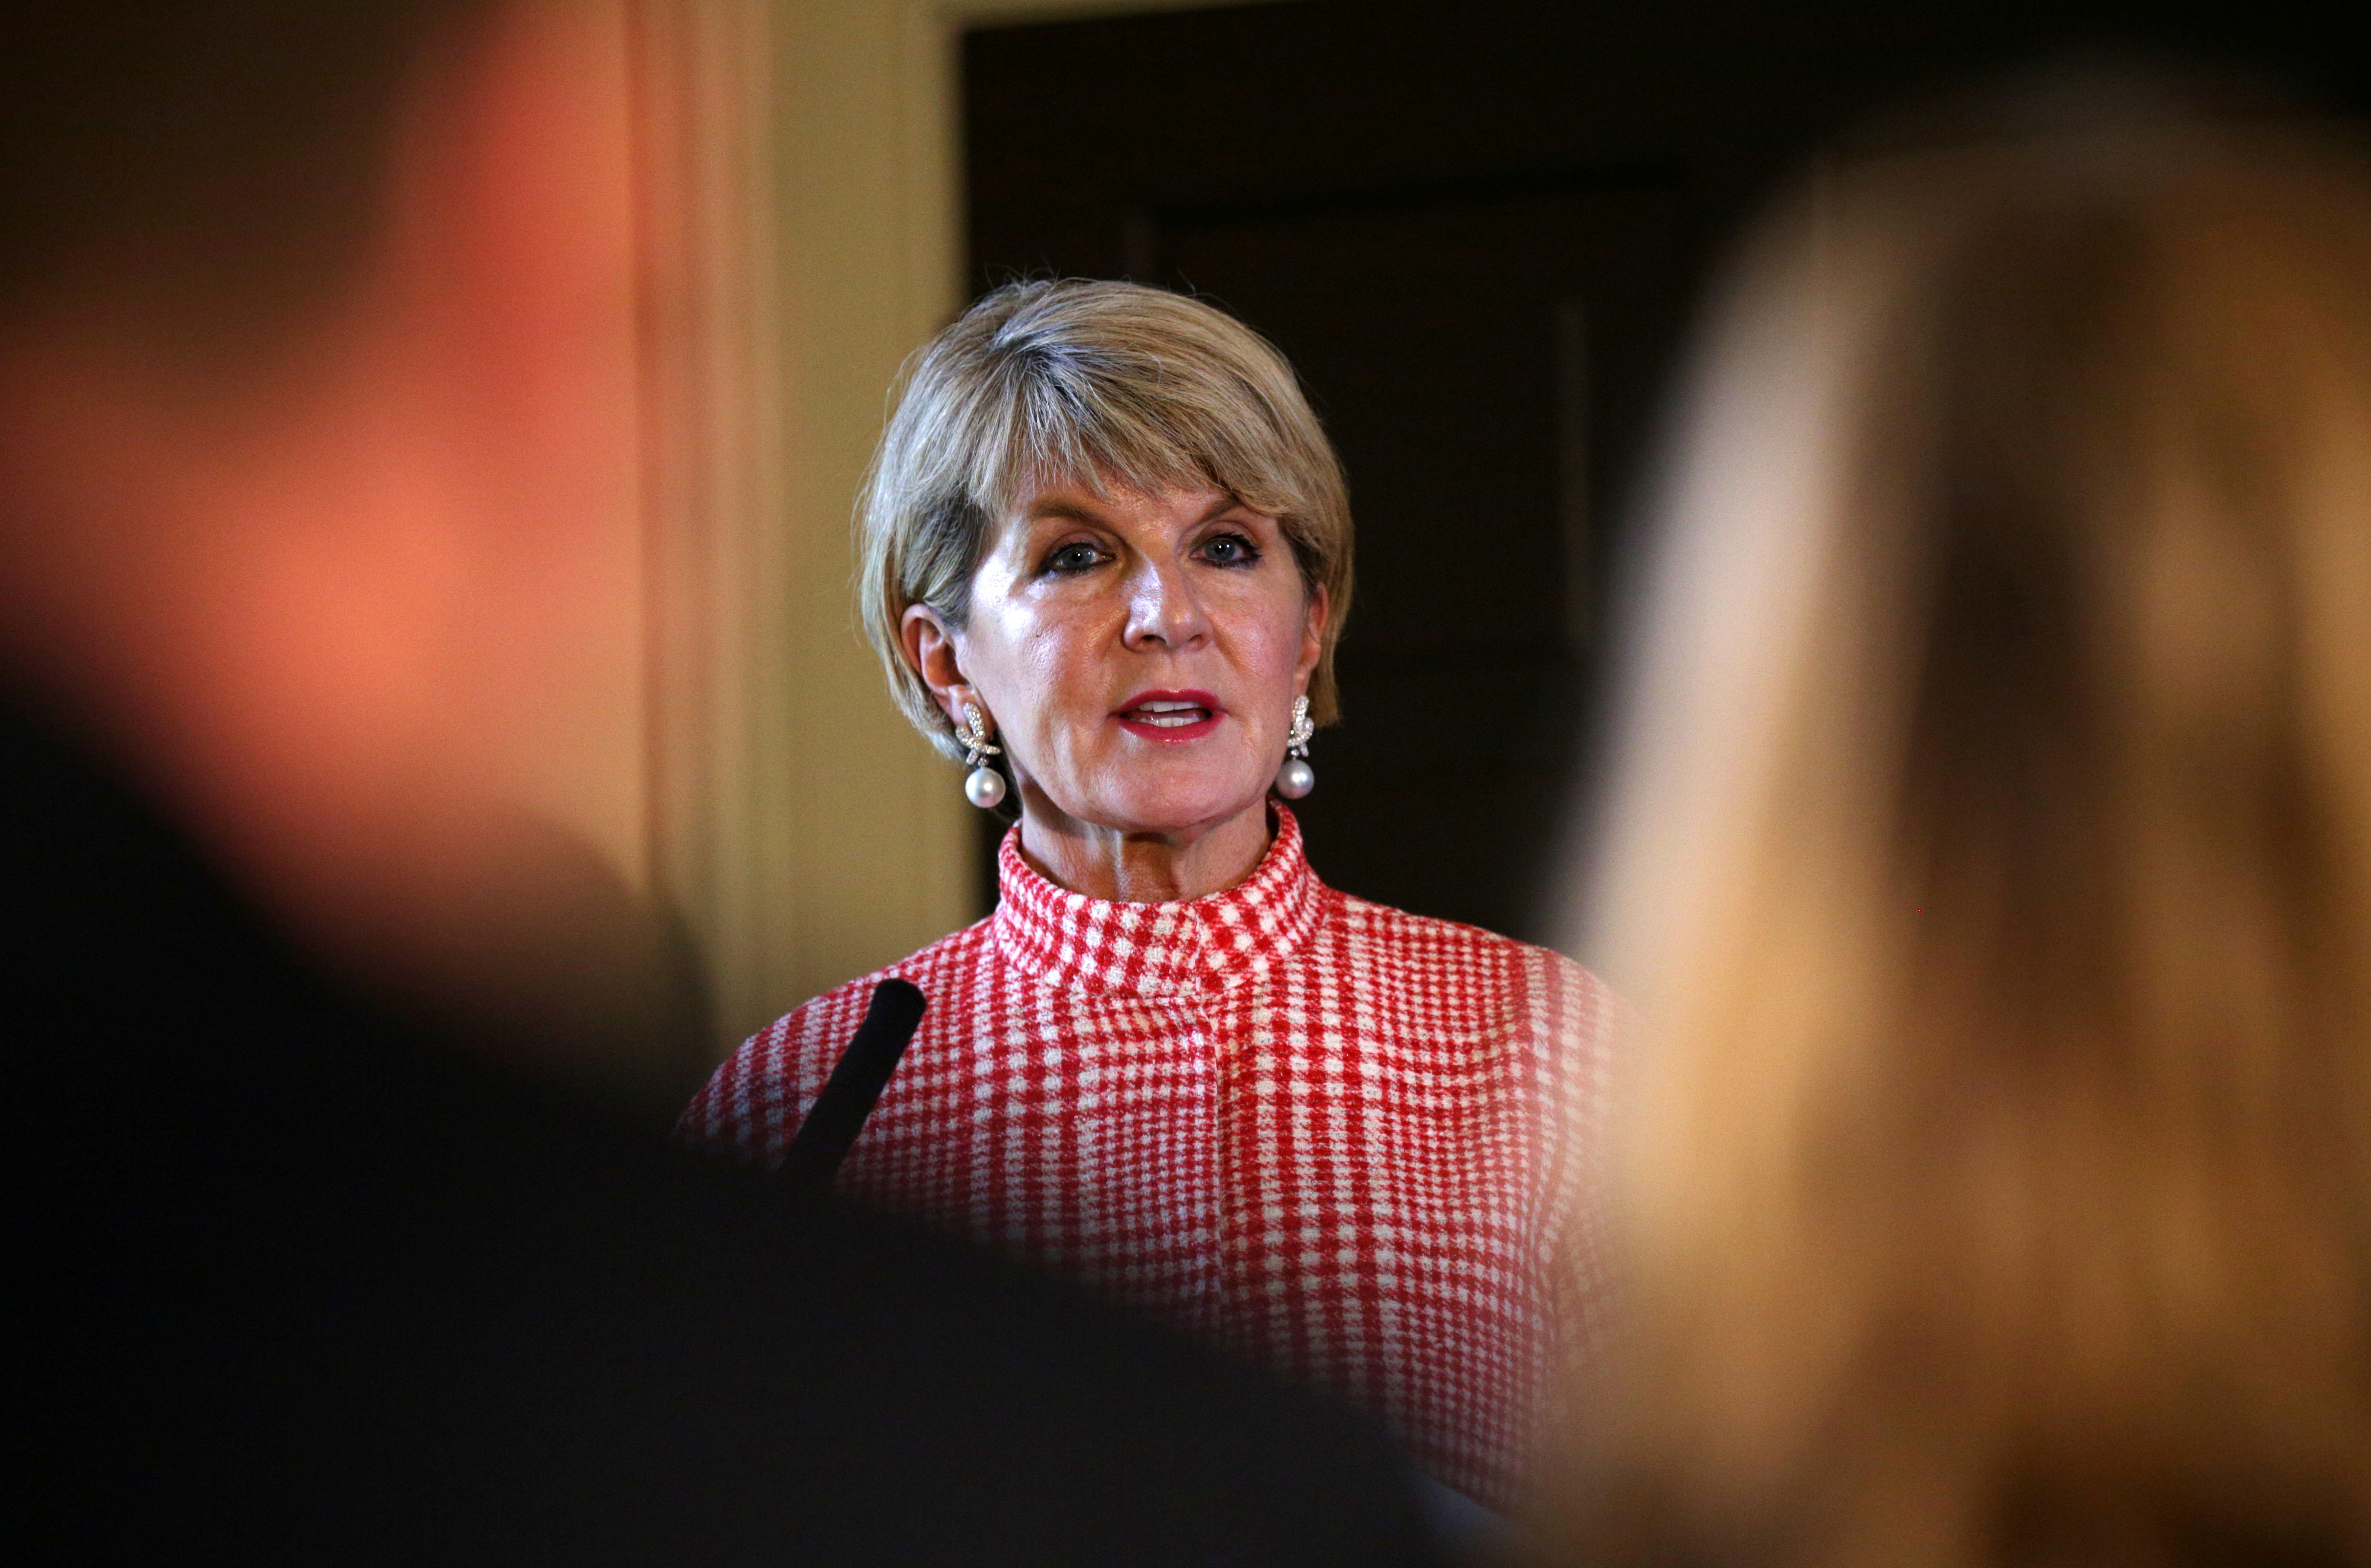 FILE PHOTO: Australia's Foreign Minister Julie Bishop gives a press conference at the Royal Botanic Garden in Edinburgh, Scotland July 20, 2018. David Cheskin/Pool via Reuters/File Photo